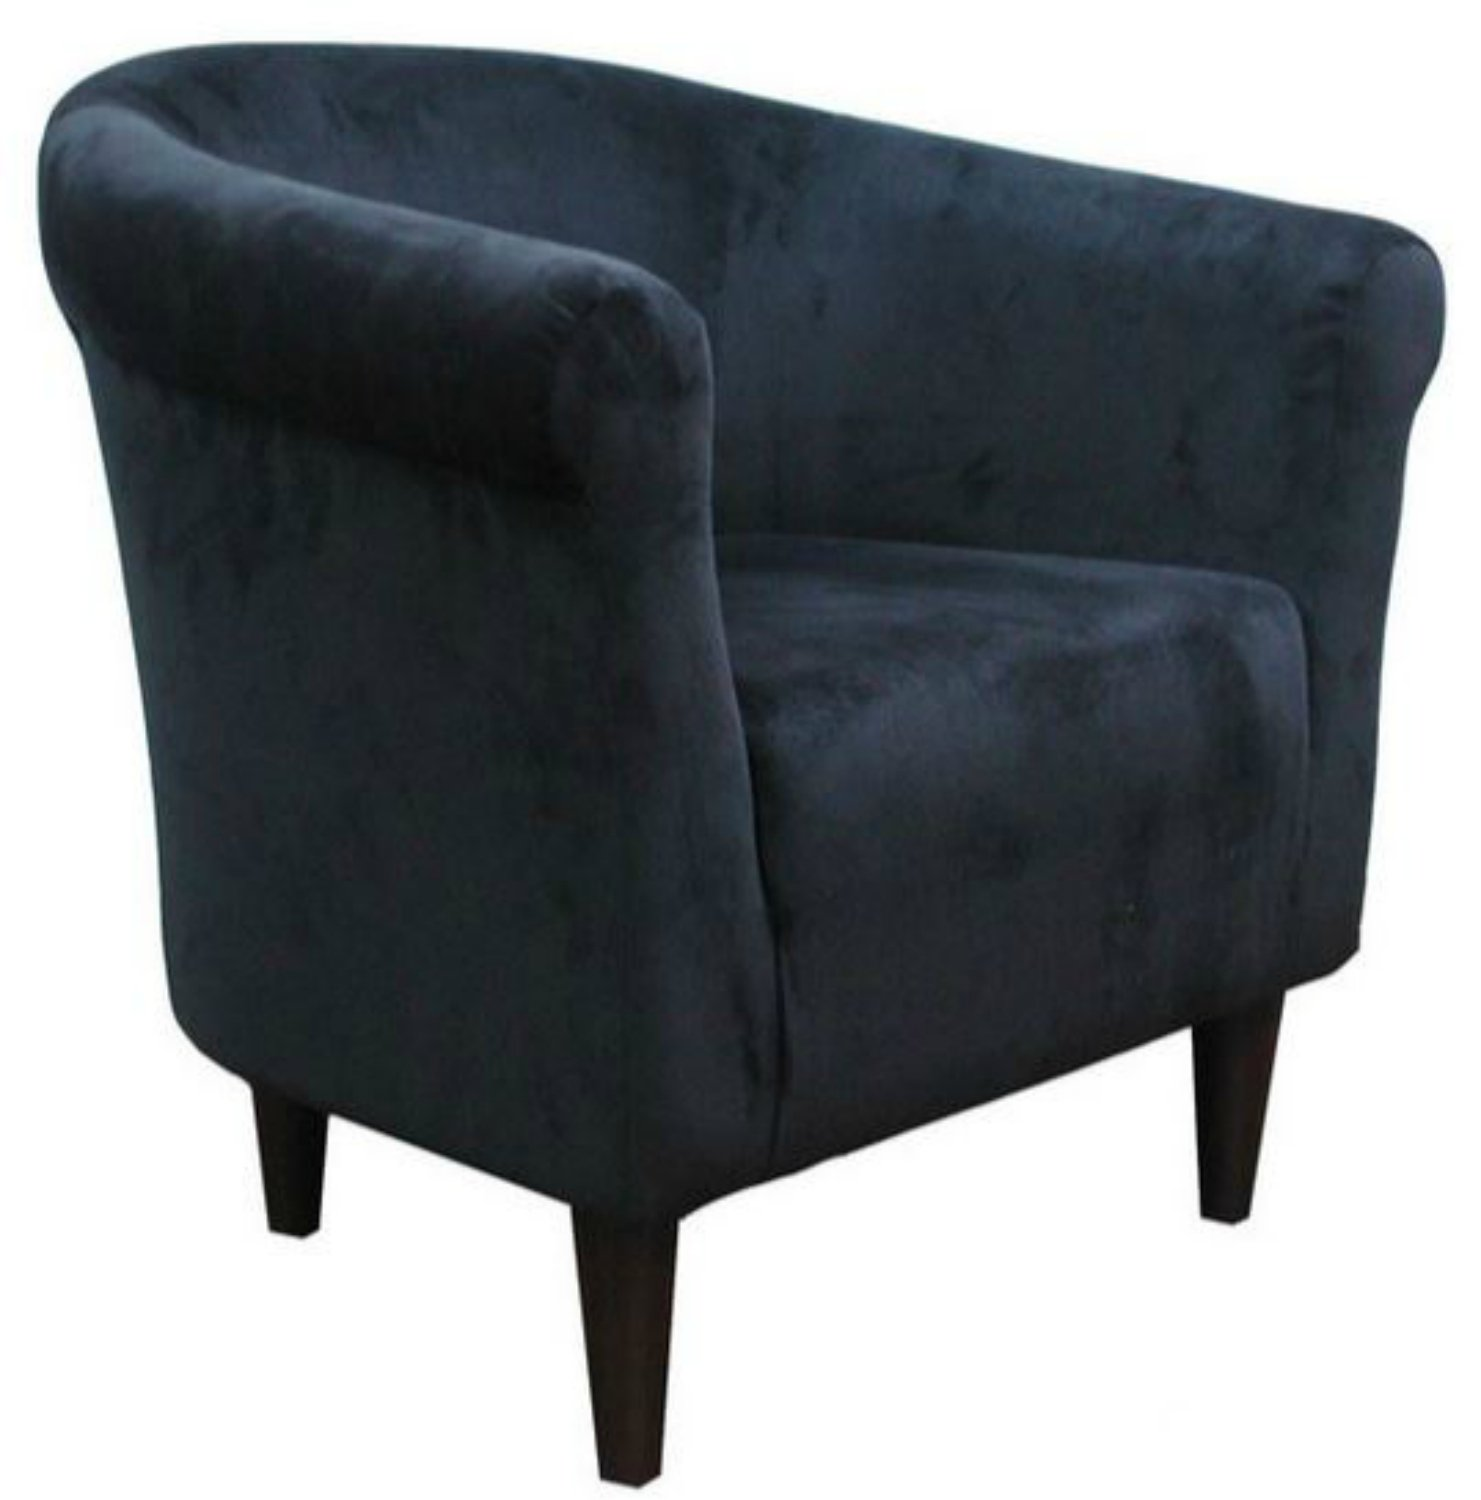 barrel chair lloyd chairs wright by and occassional ottomans frank products cassina